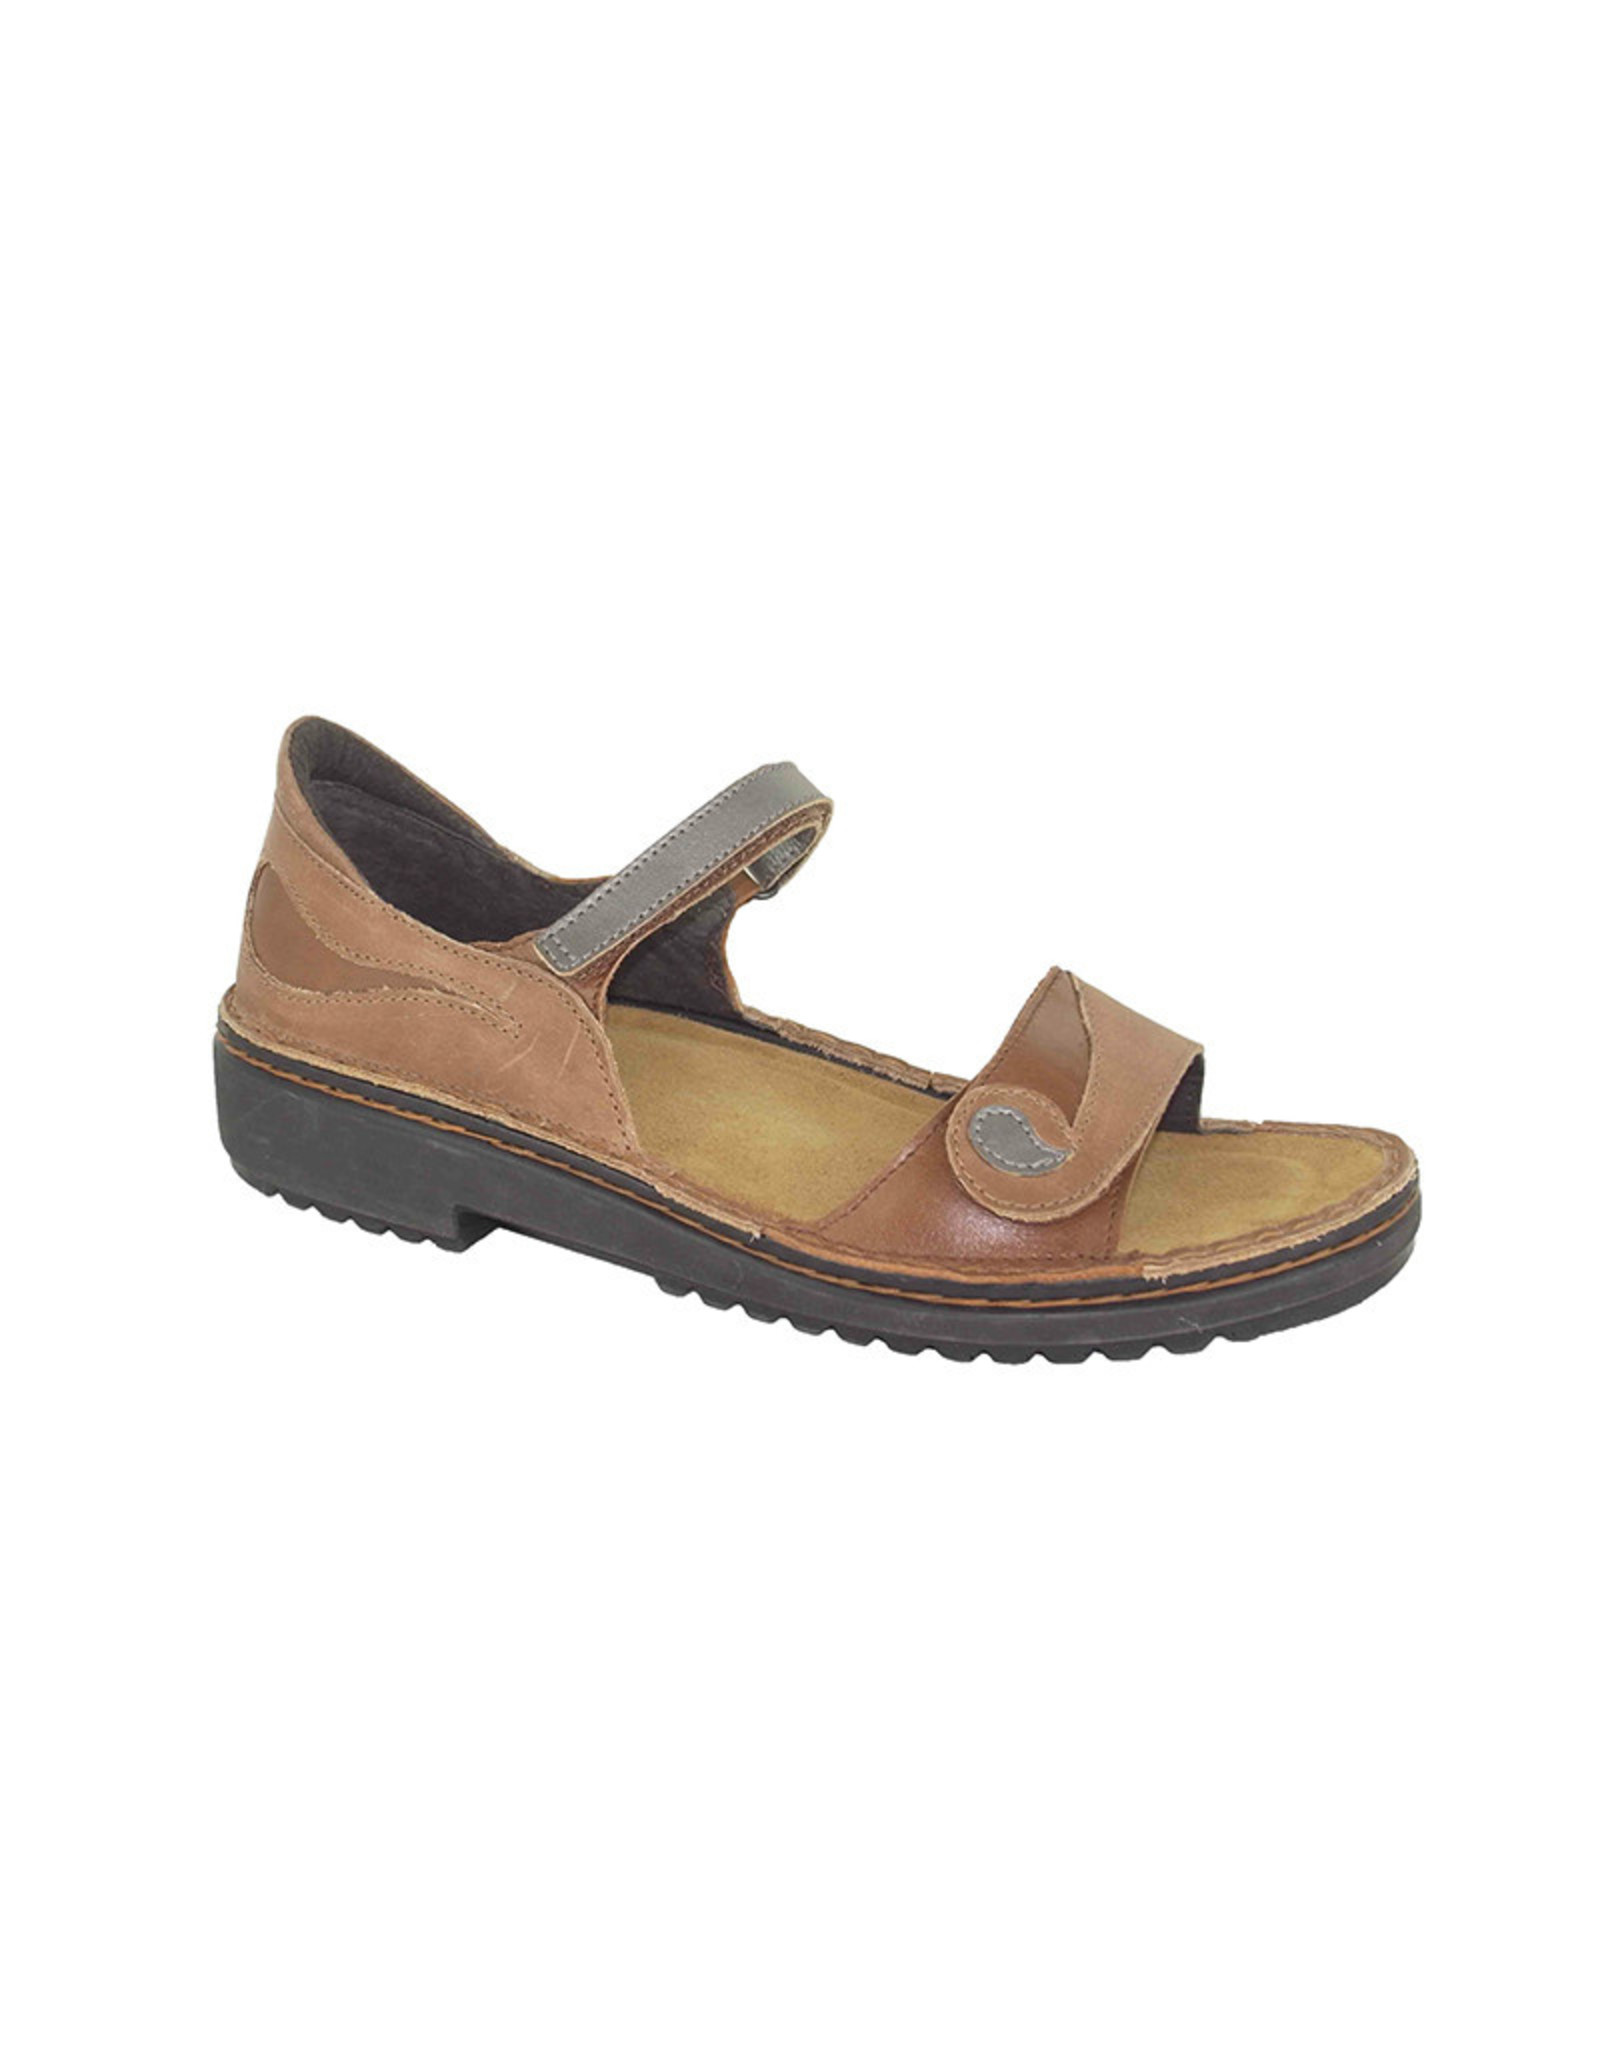 Naot Footwear Yolanda in Latte Brown Combo